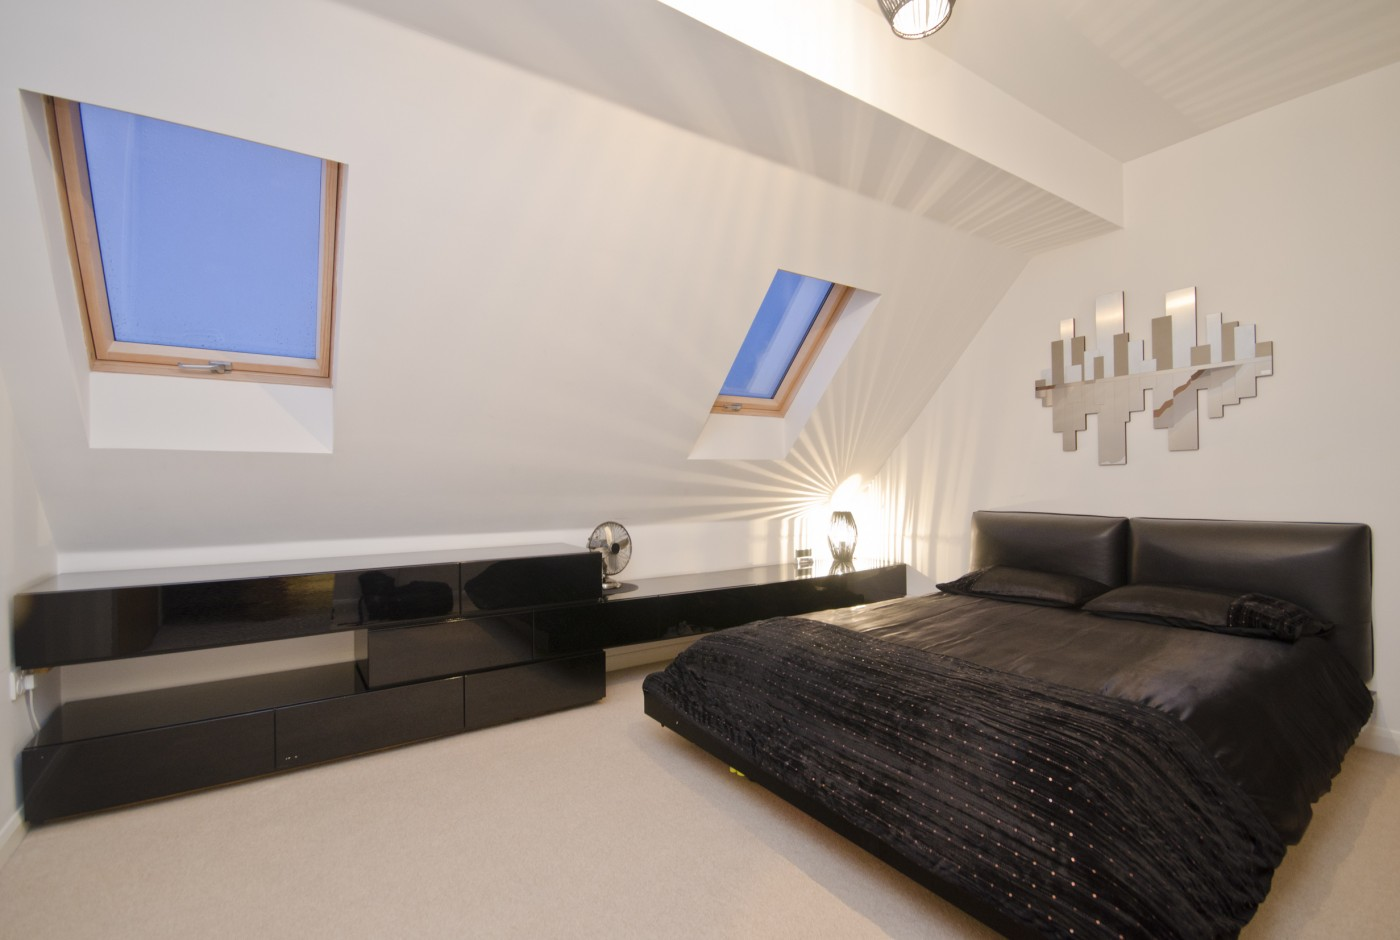 Carolina road norbury cr7 liv london property agents for 1 bedroom apartment near downsview station